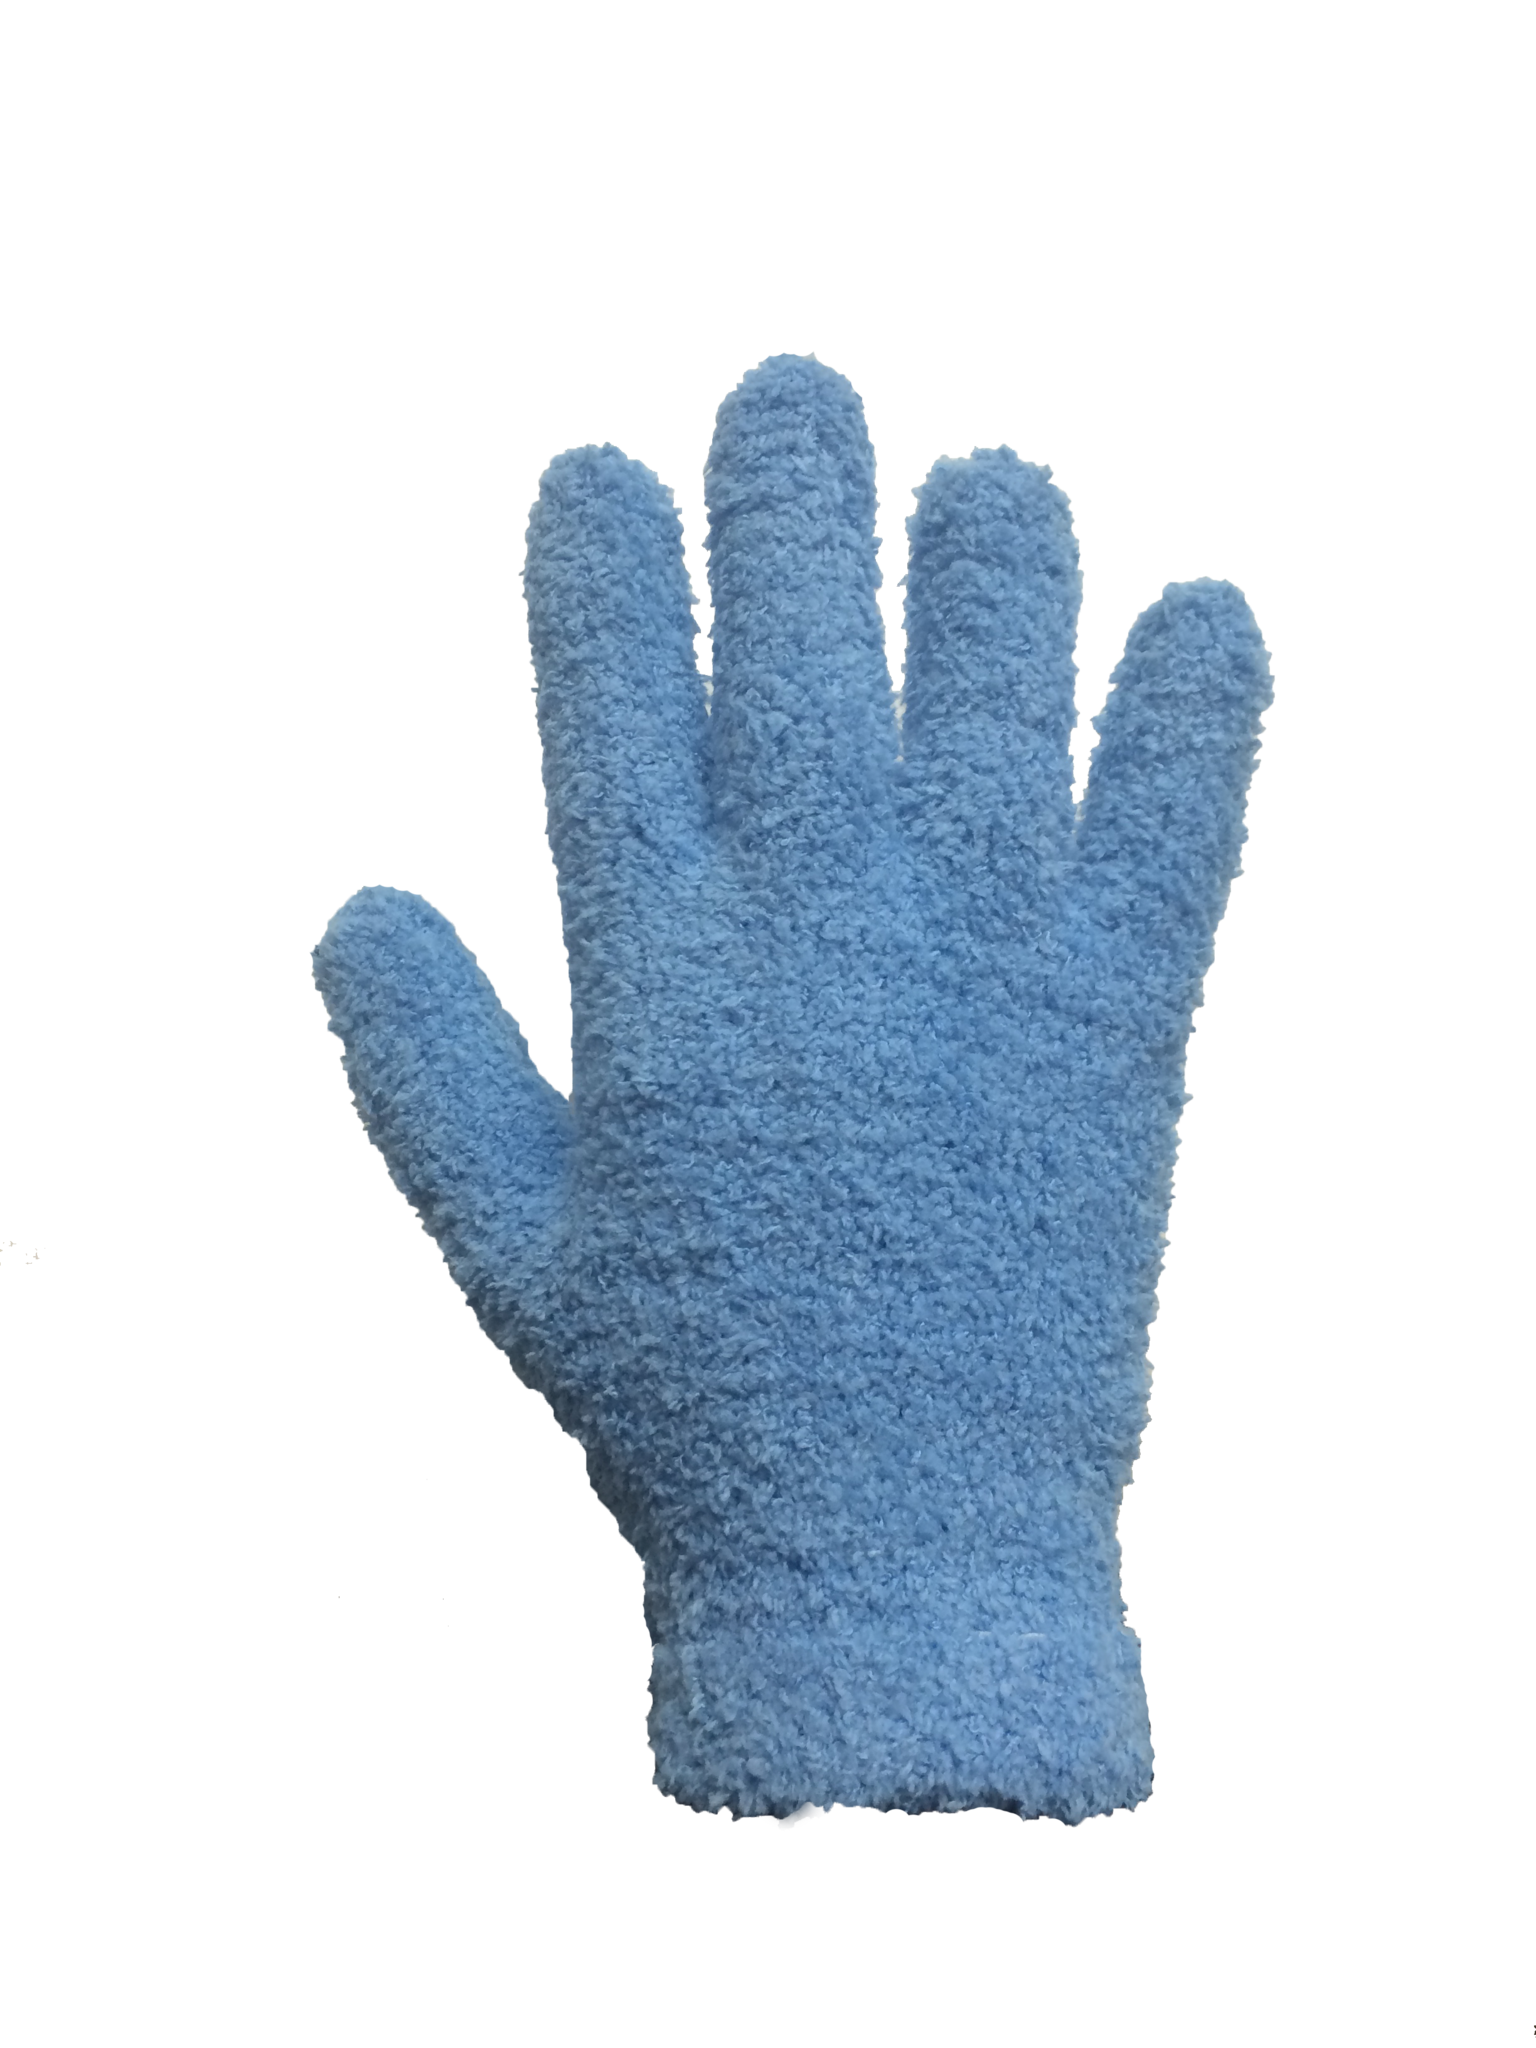 Gloves PNG images free download, glove PNG.